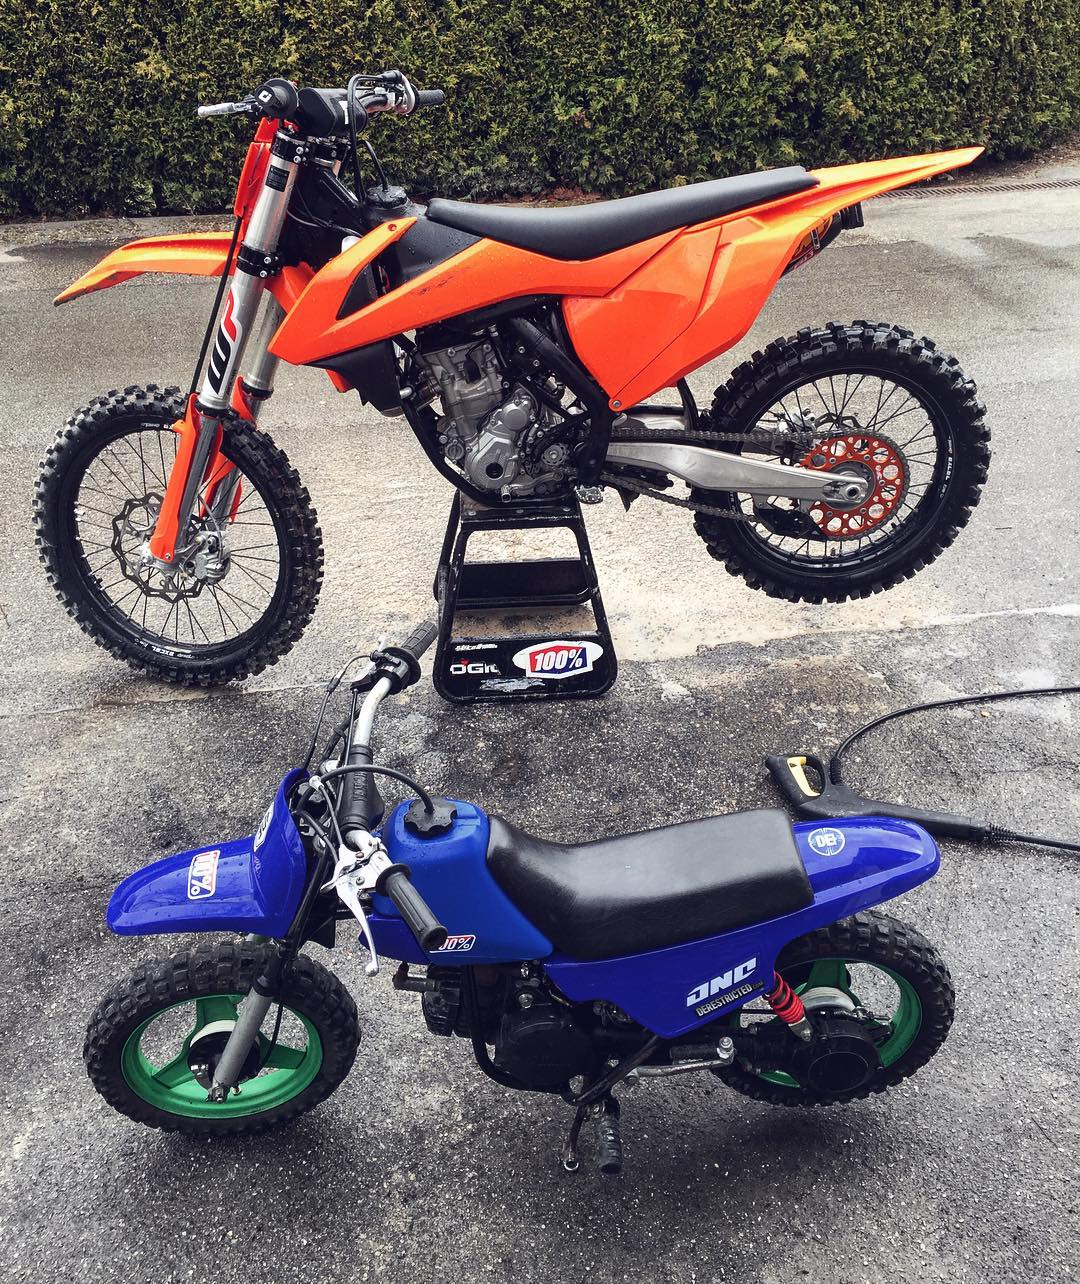 sunday bike wash with the kids ktm 350sxf yamaha pw50 derestricted. Black Bedroom Furniture Sets. Home Design Ideas